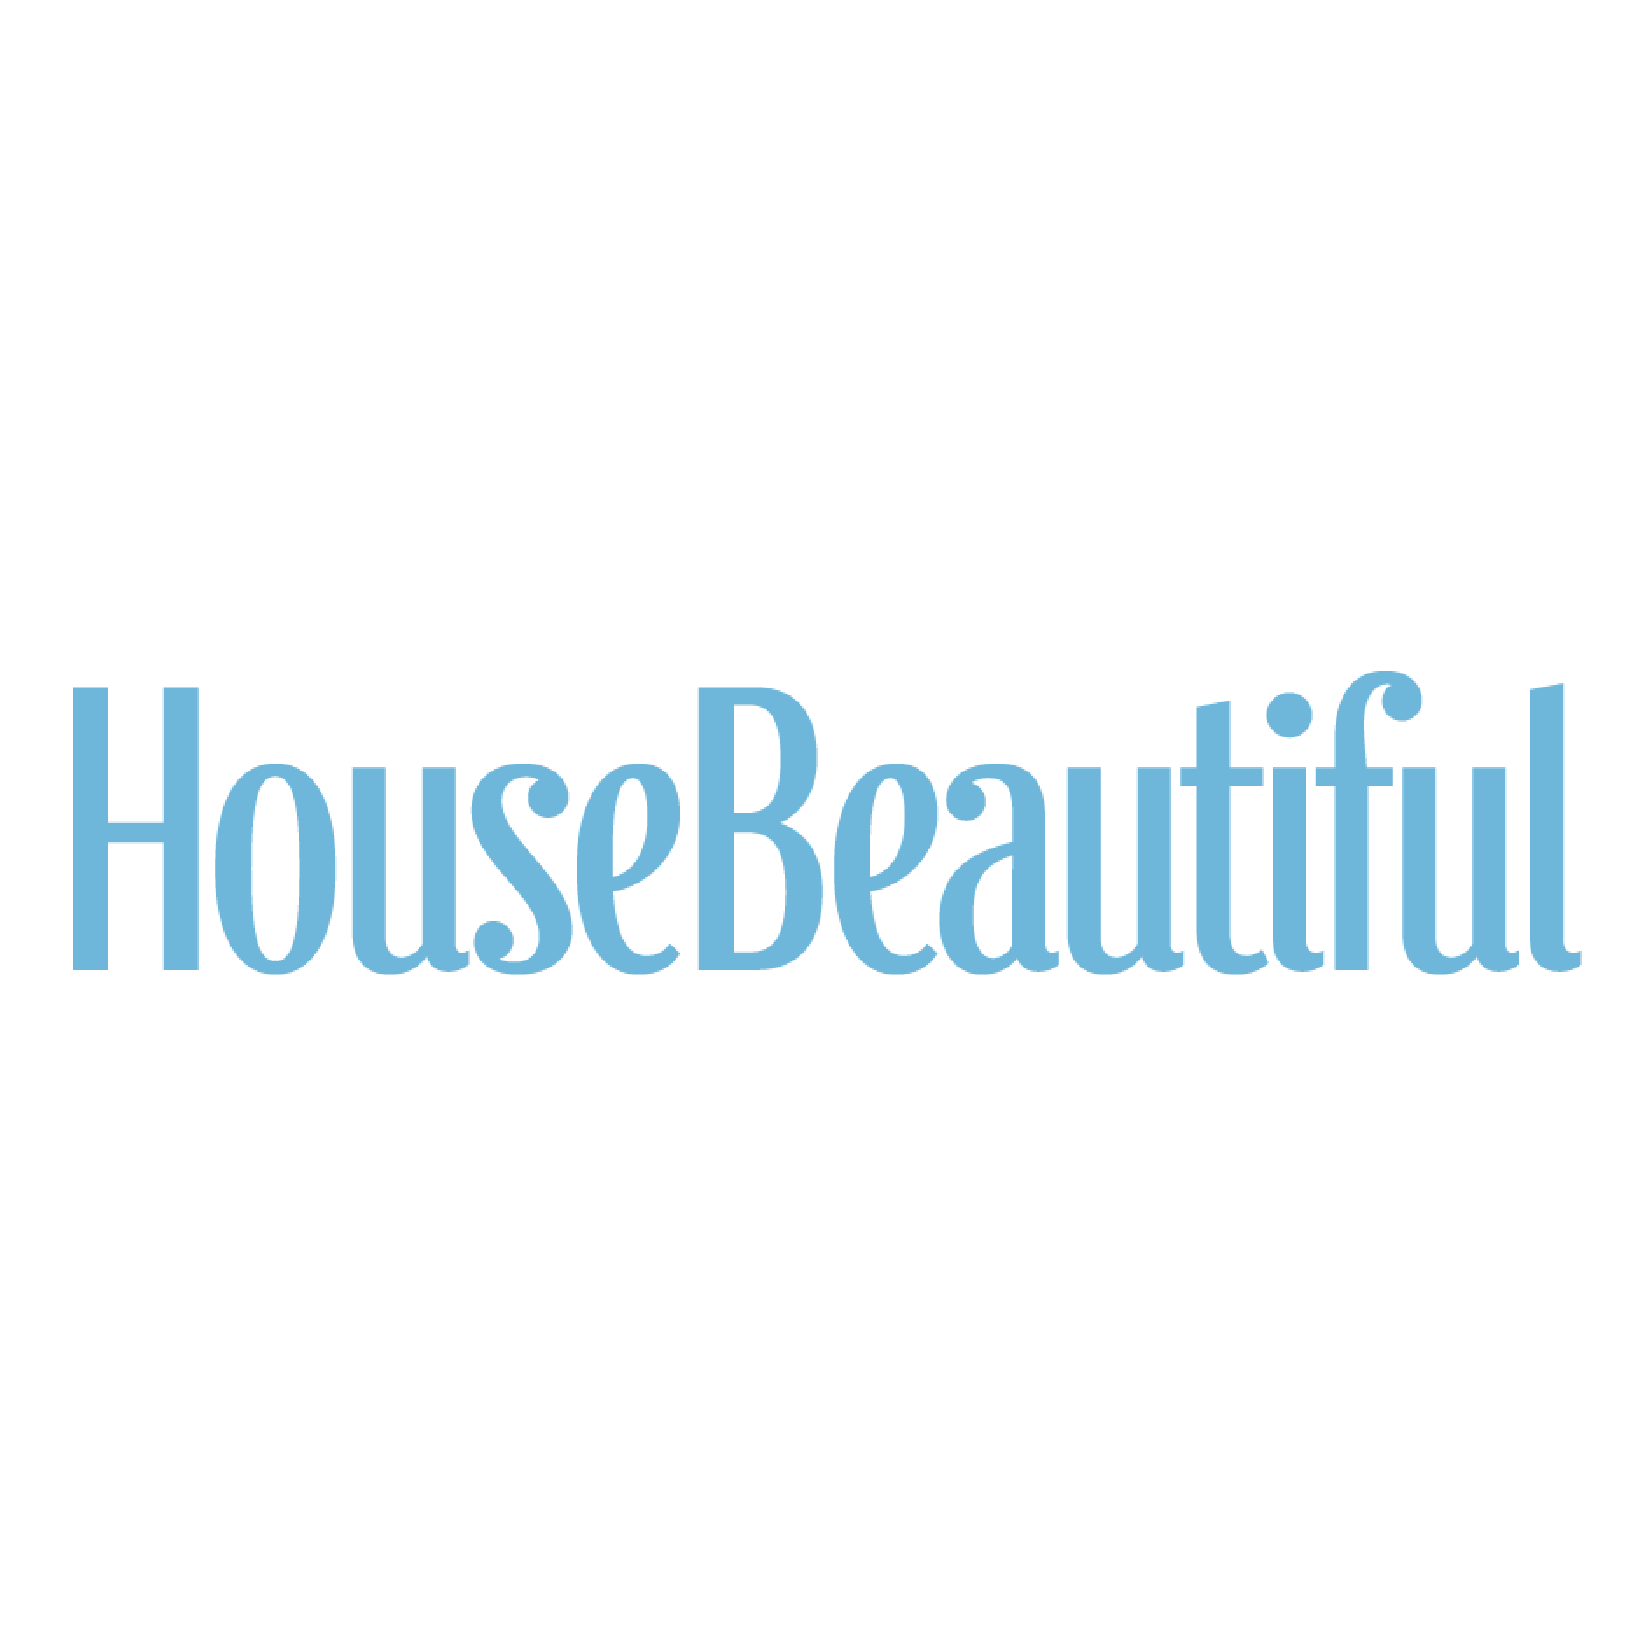 House Beautiful Scripted Fragrance Etsy Best Dog Gifts Scented Soy Dog Breed Candle